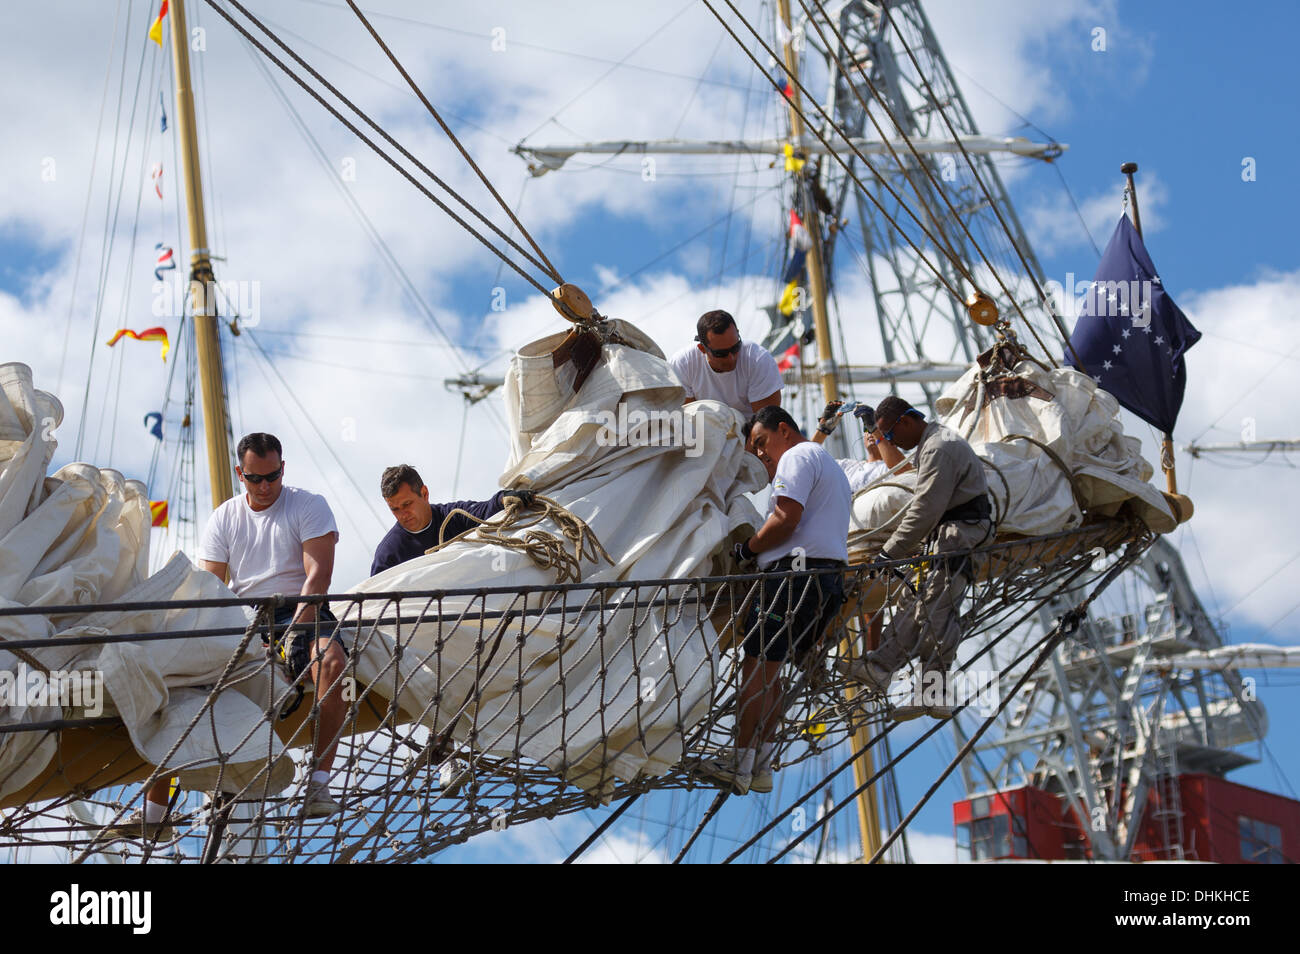 Crew members of the Brazilian Navy training vessel Cisne Branco handling her sails in The Tall Ships Races of 2013. - Stock Image